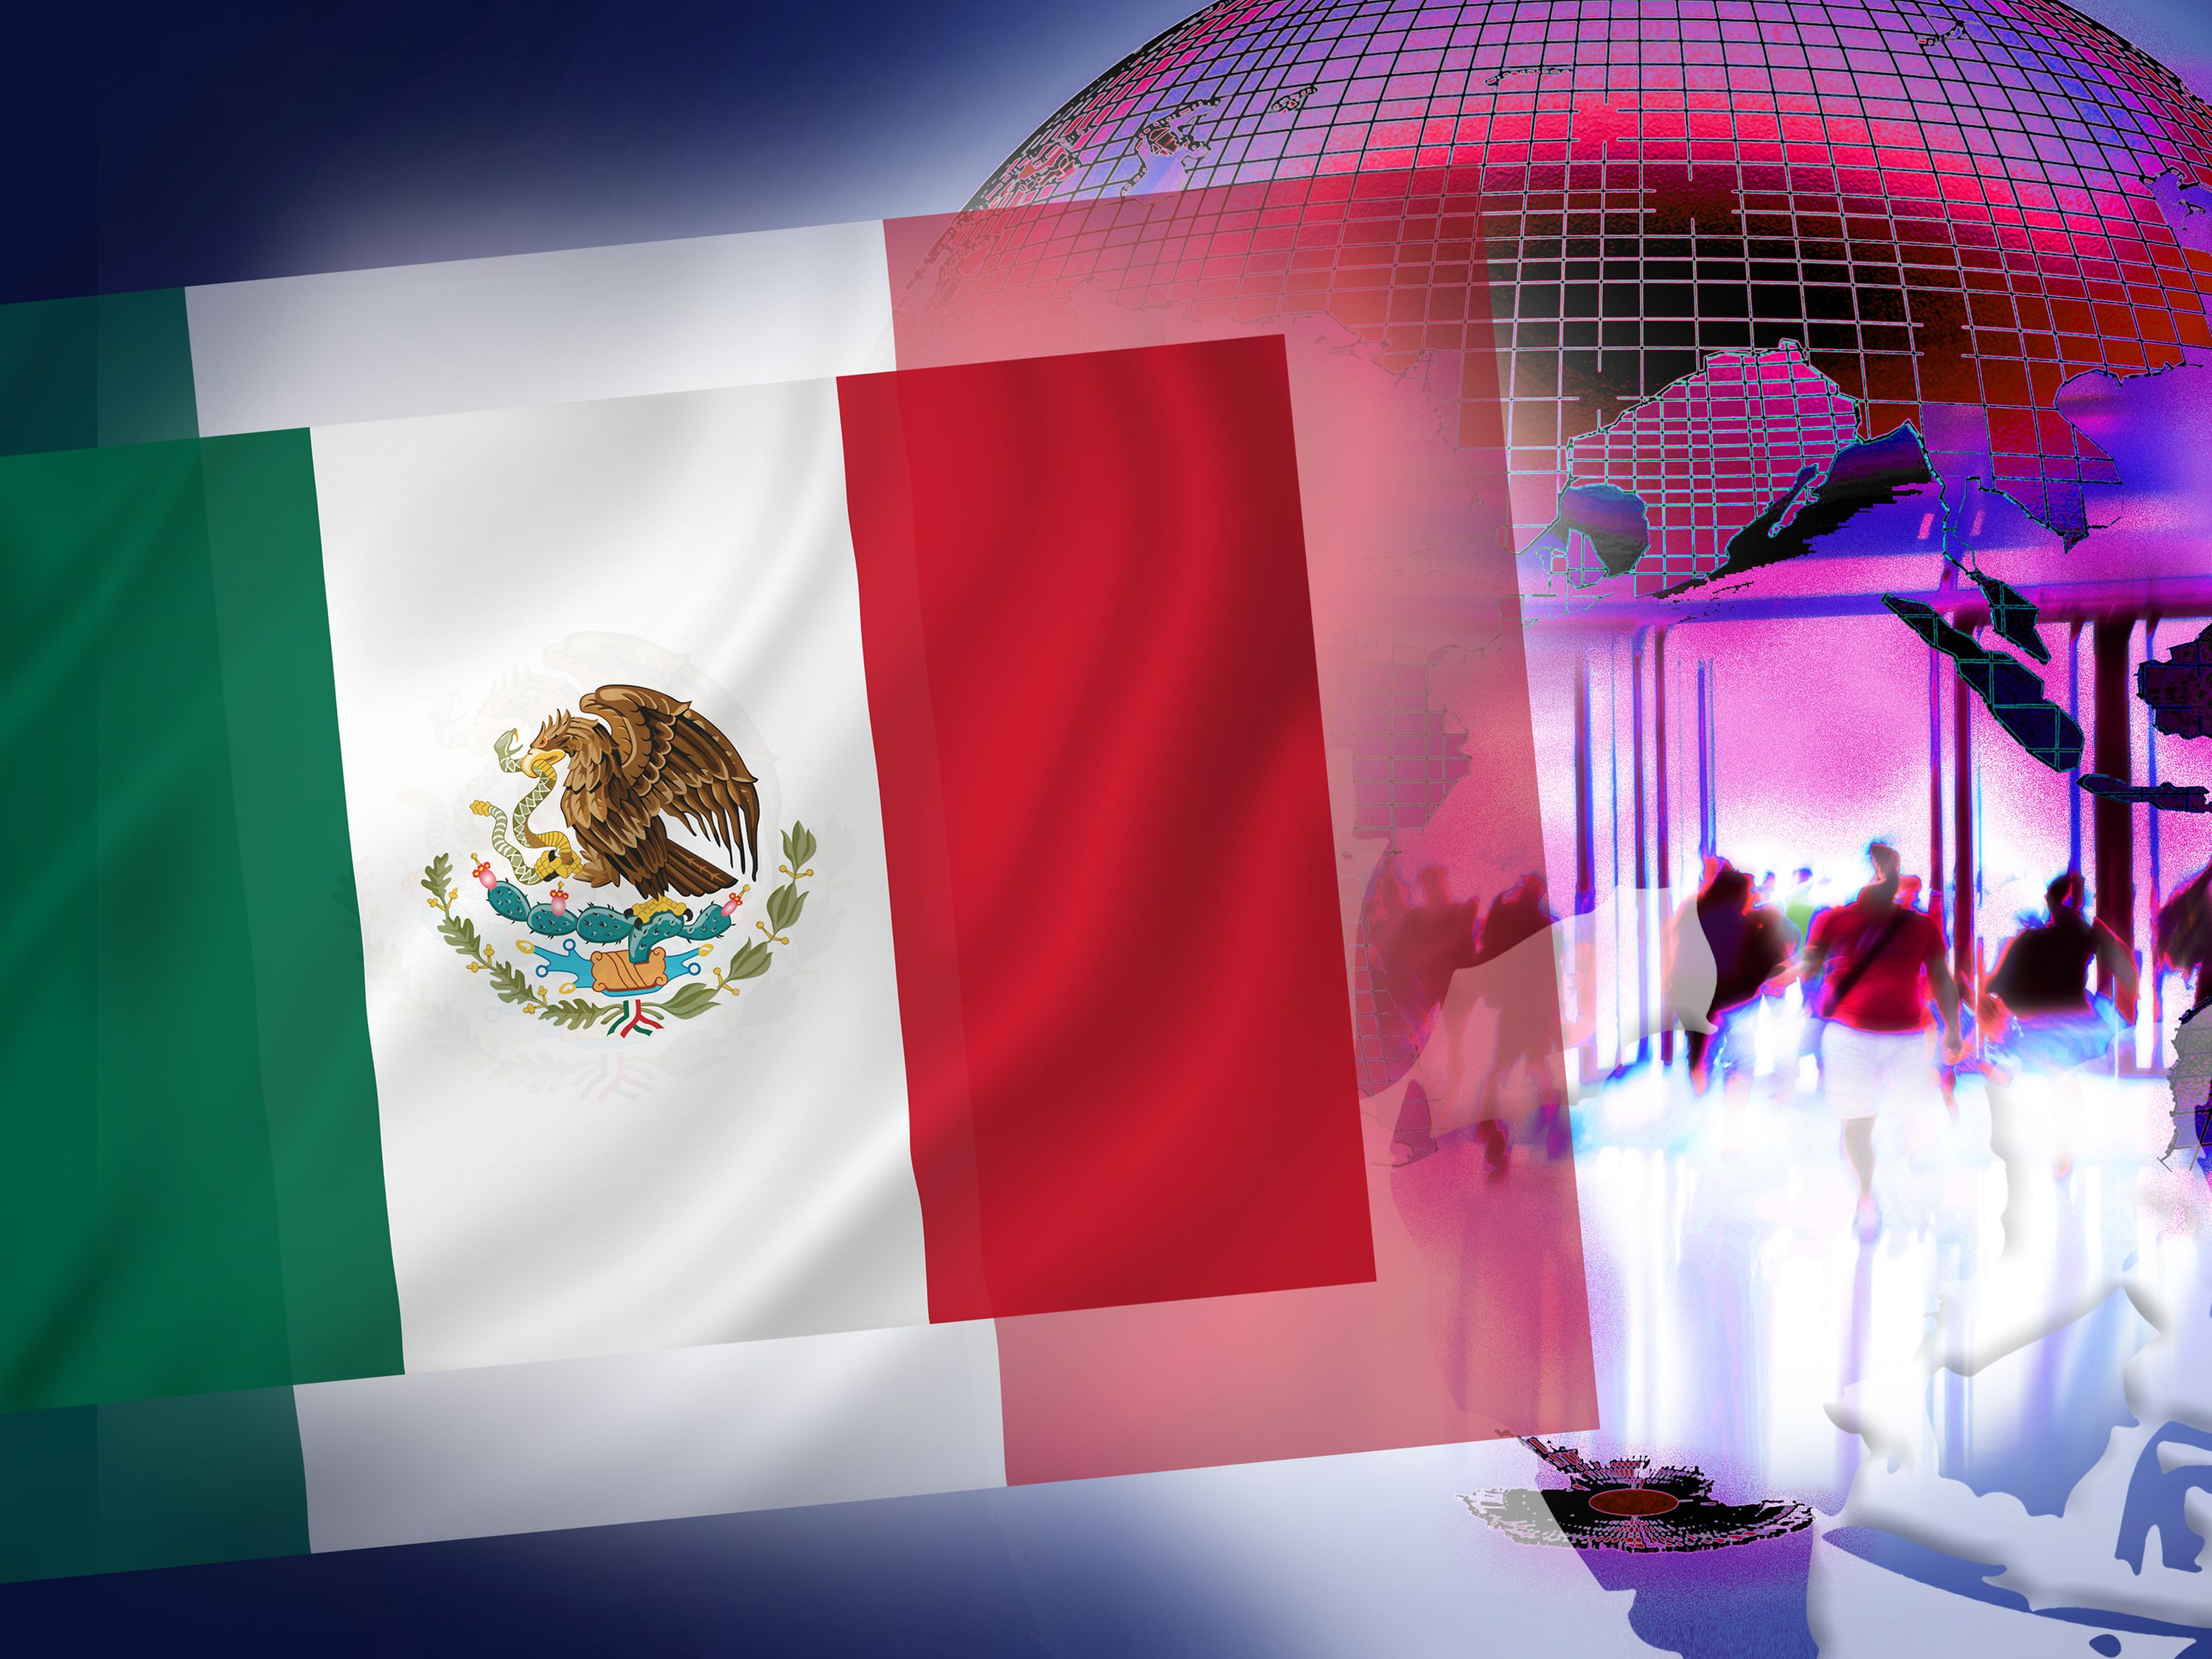 Illustration for NatCo in Mexico with country flag.